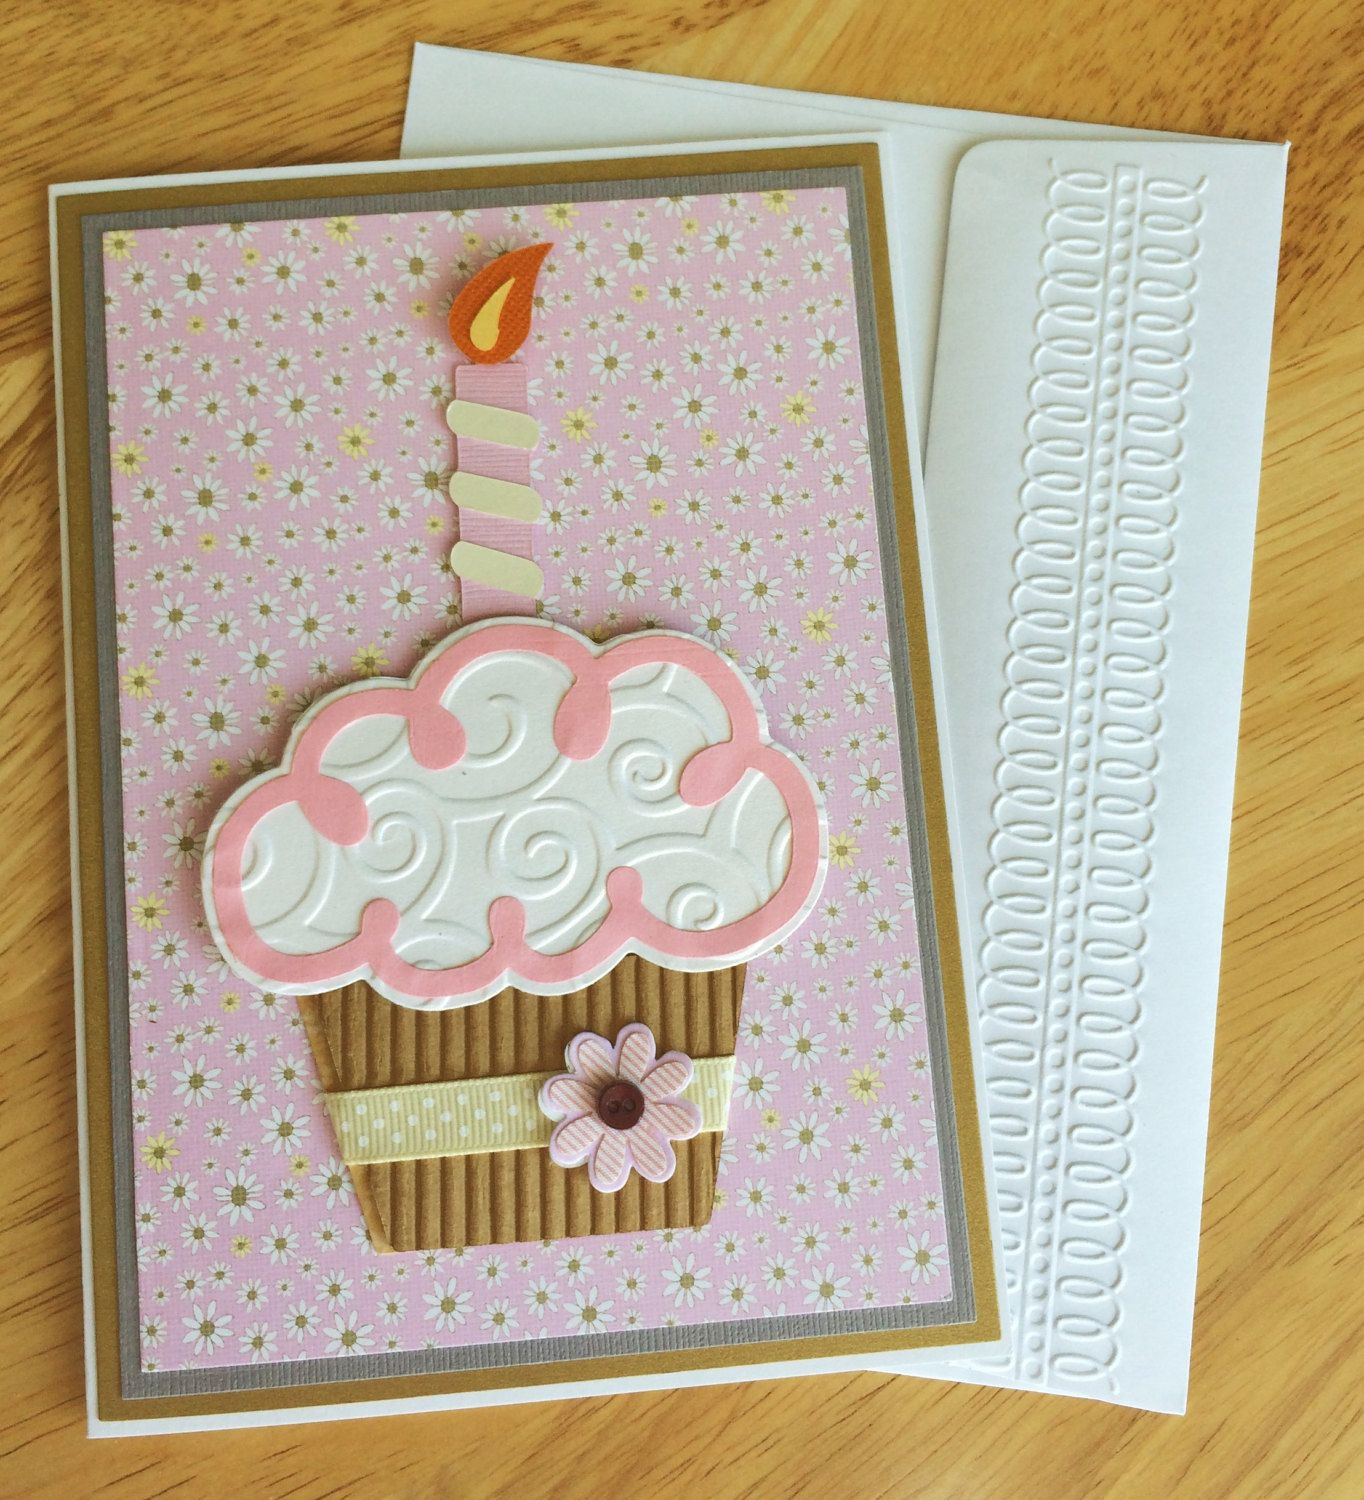 3D Cupcake Handmade Birthday Card 1 2 3 4 5 6 Year Old Girl Feminine With And Candle Pink Gray By